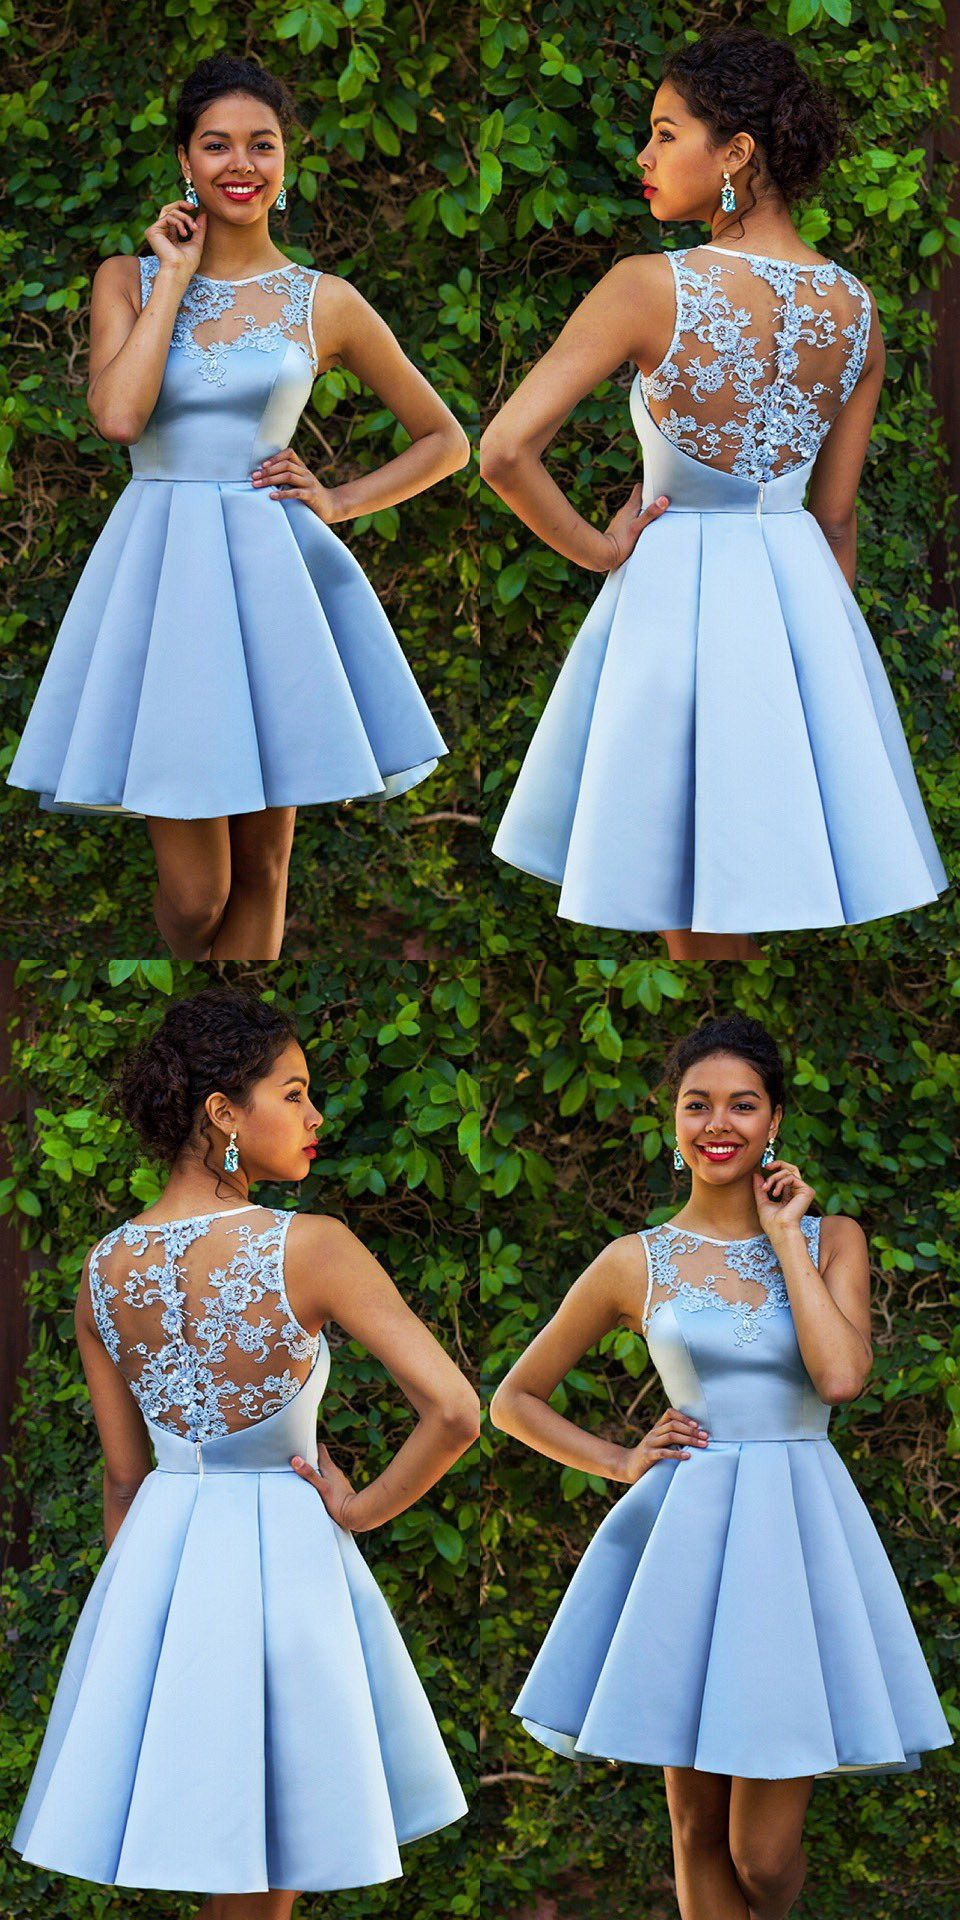 Sky Blue Homecoming Dresses,Lace Homecoming Dress,